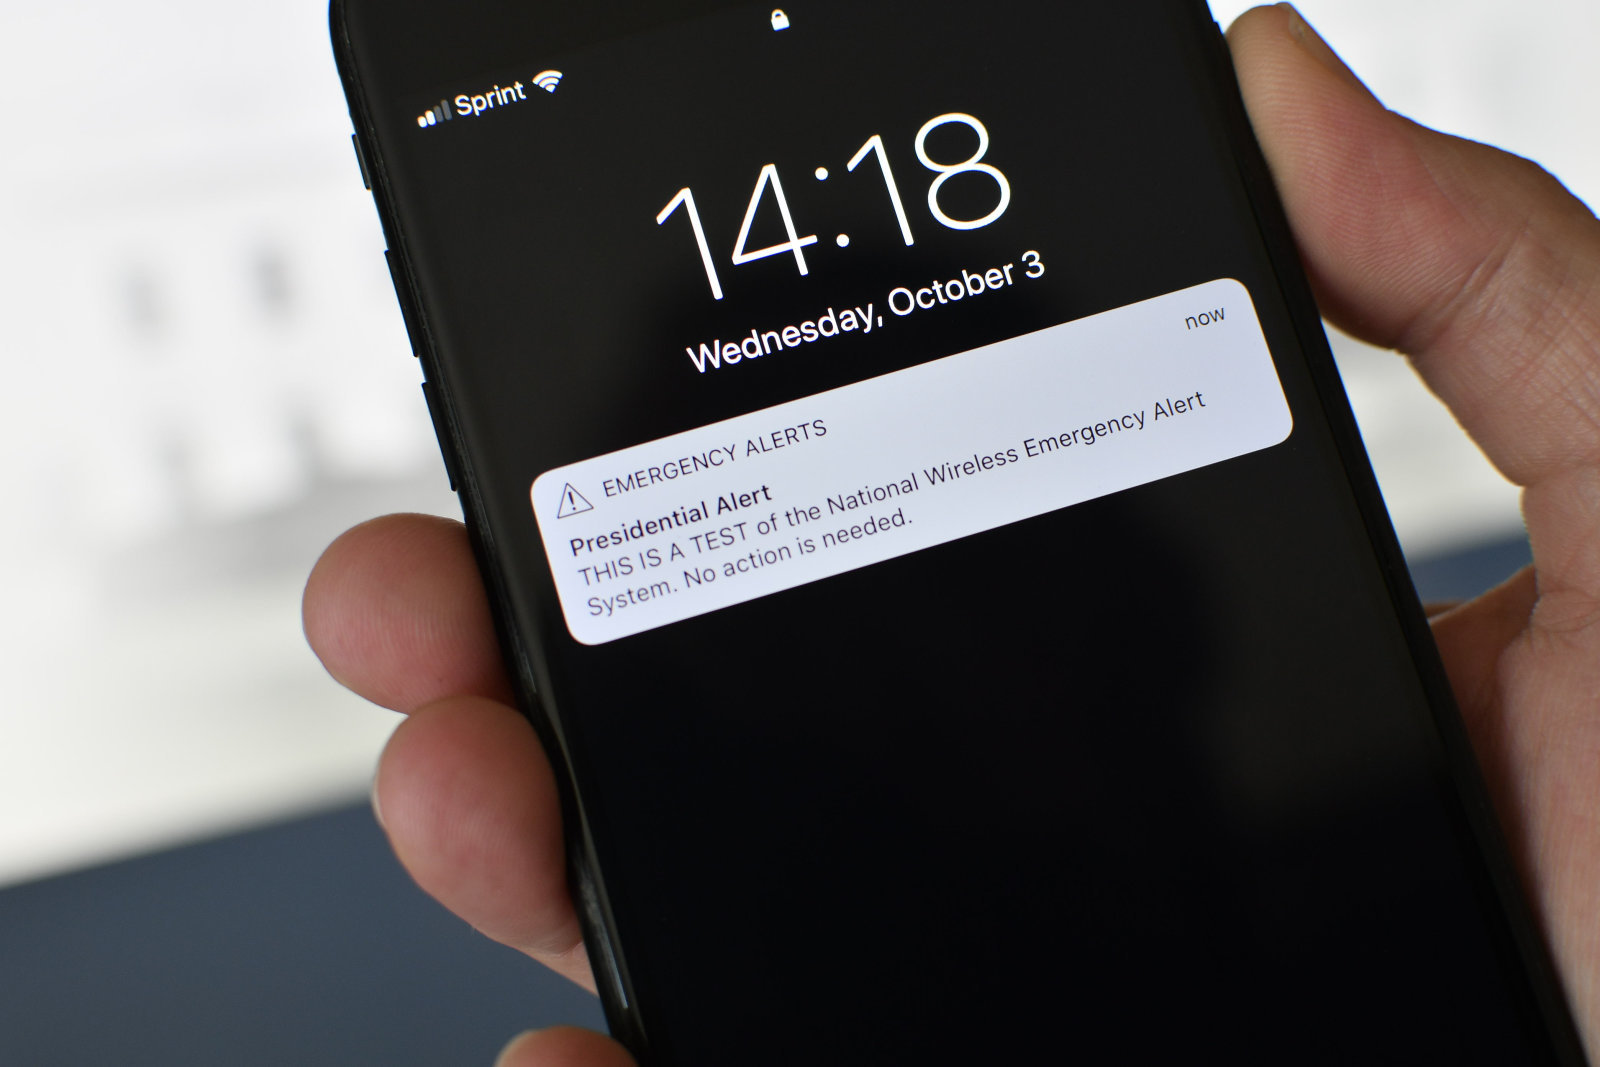 US Wireless Emergency Alerts Are Now Targeted More Locally